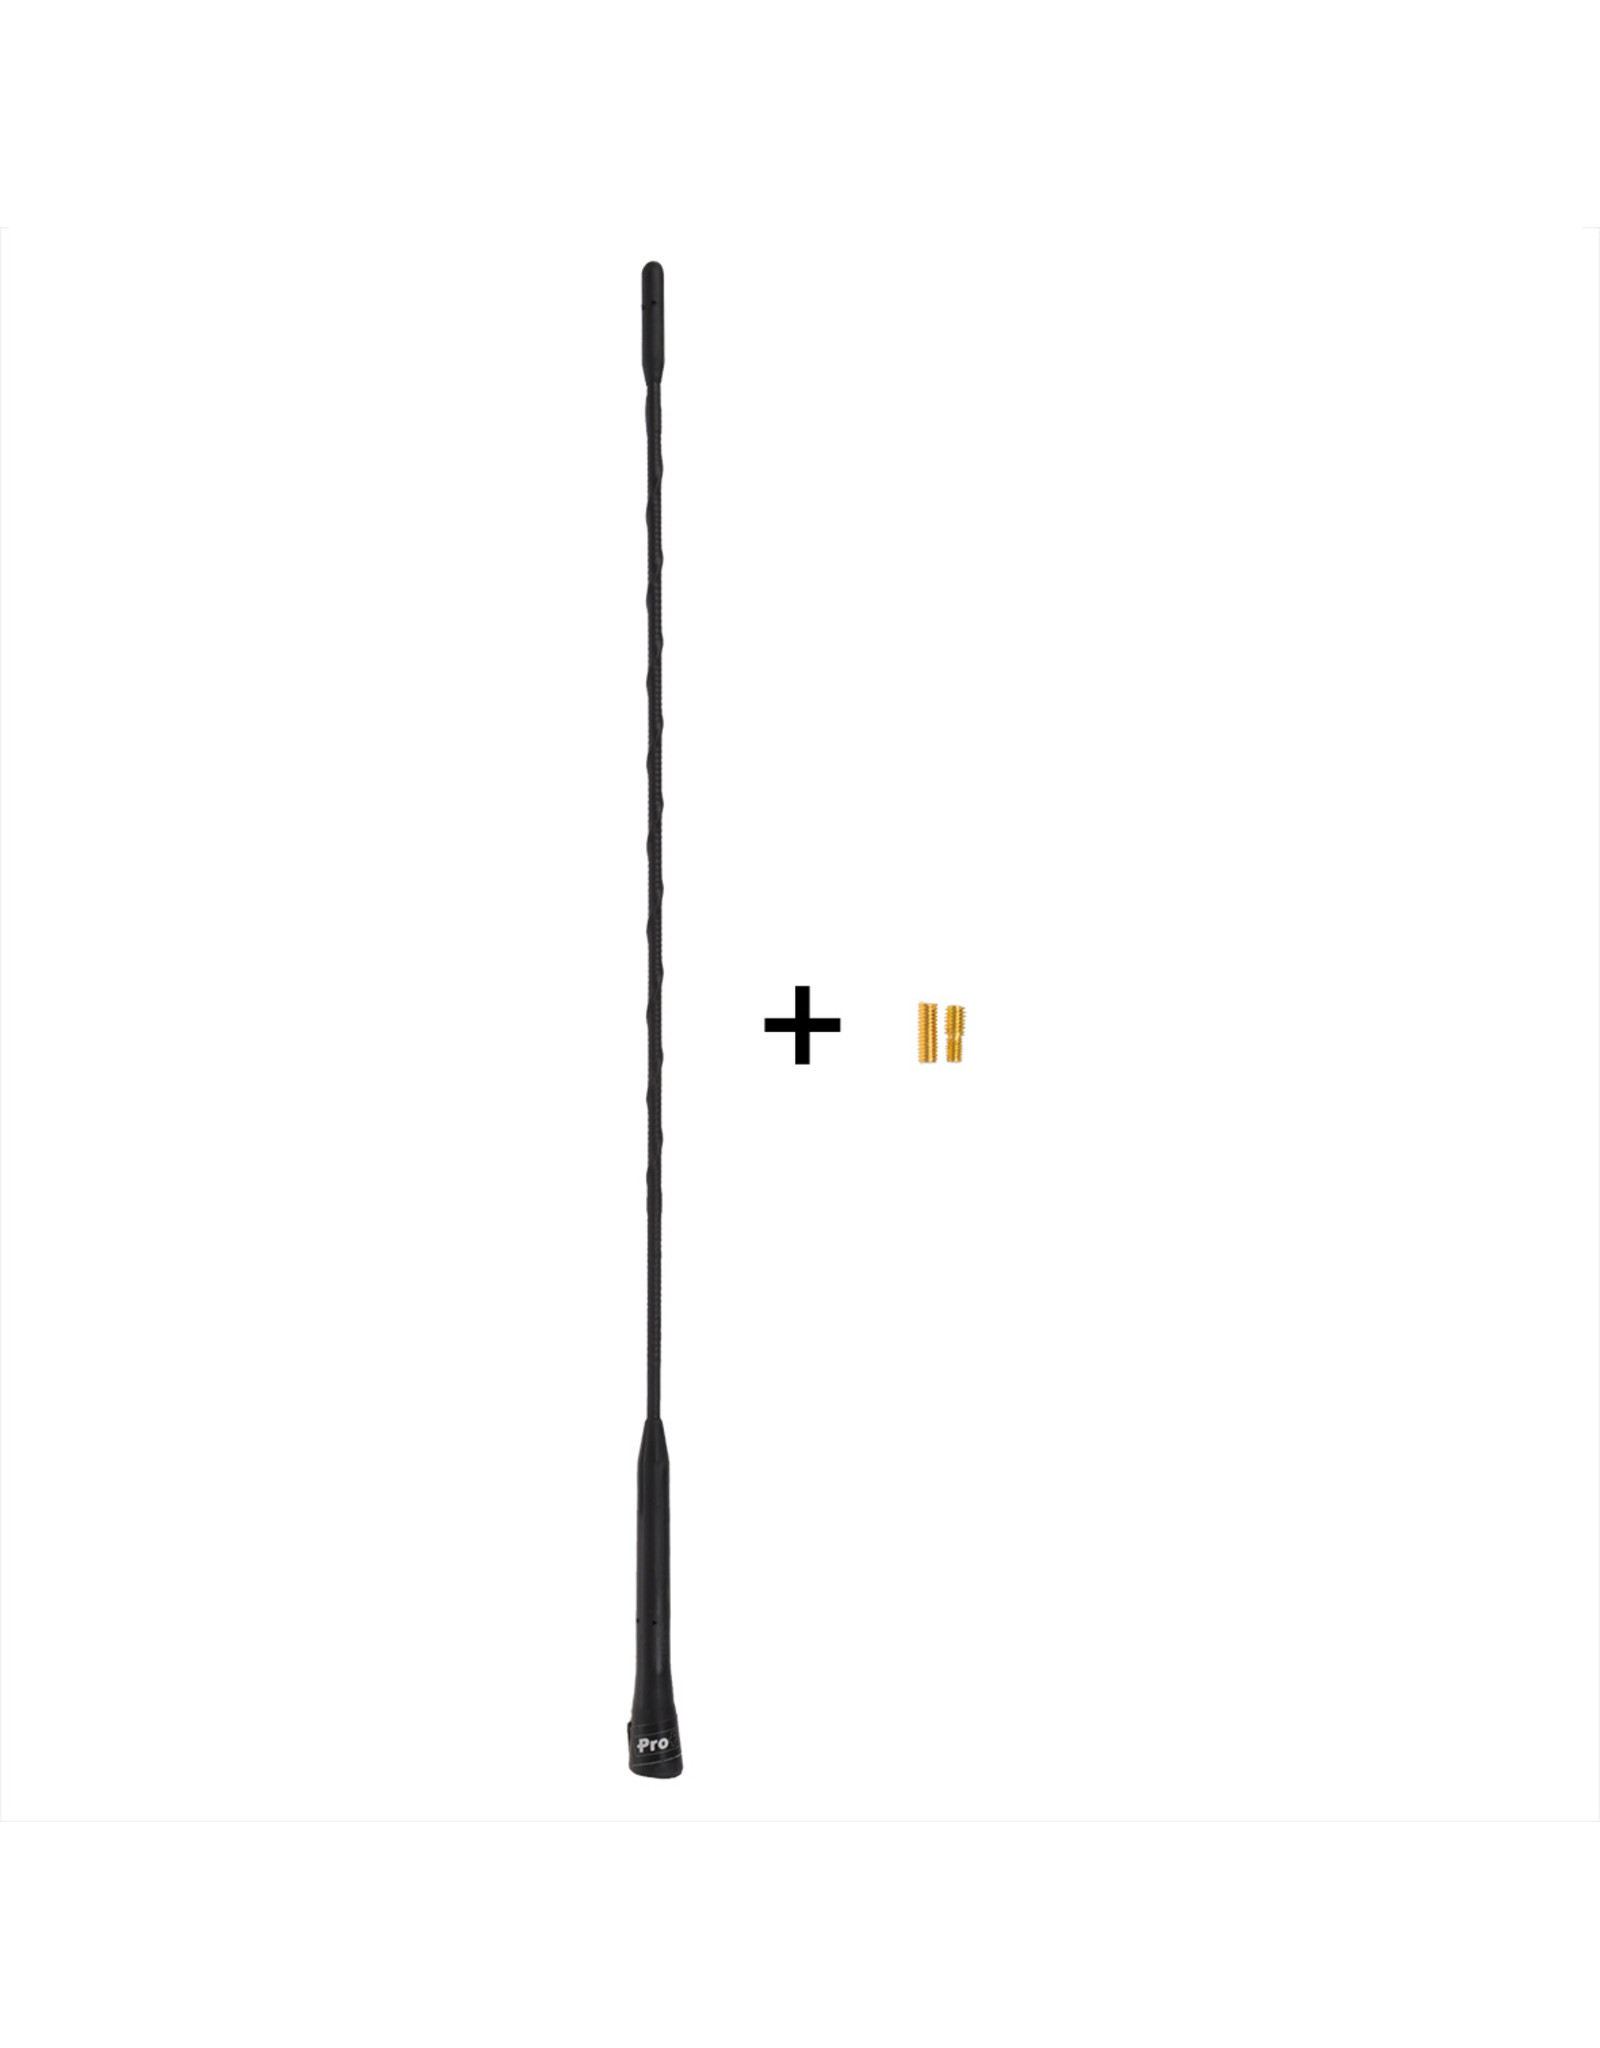 Auto antenne 40cm incl. M5 & M6 adapters